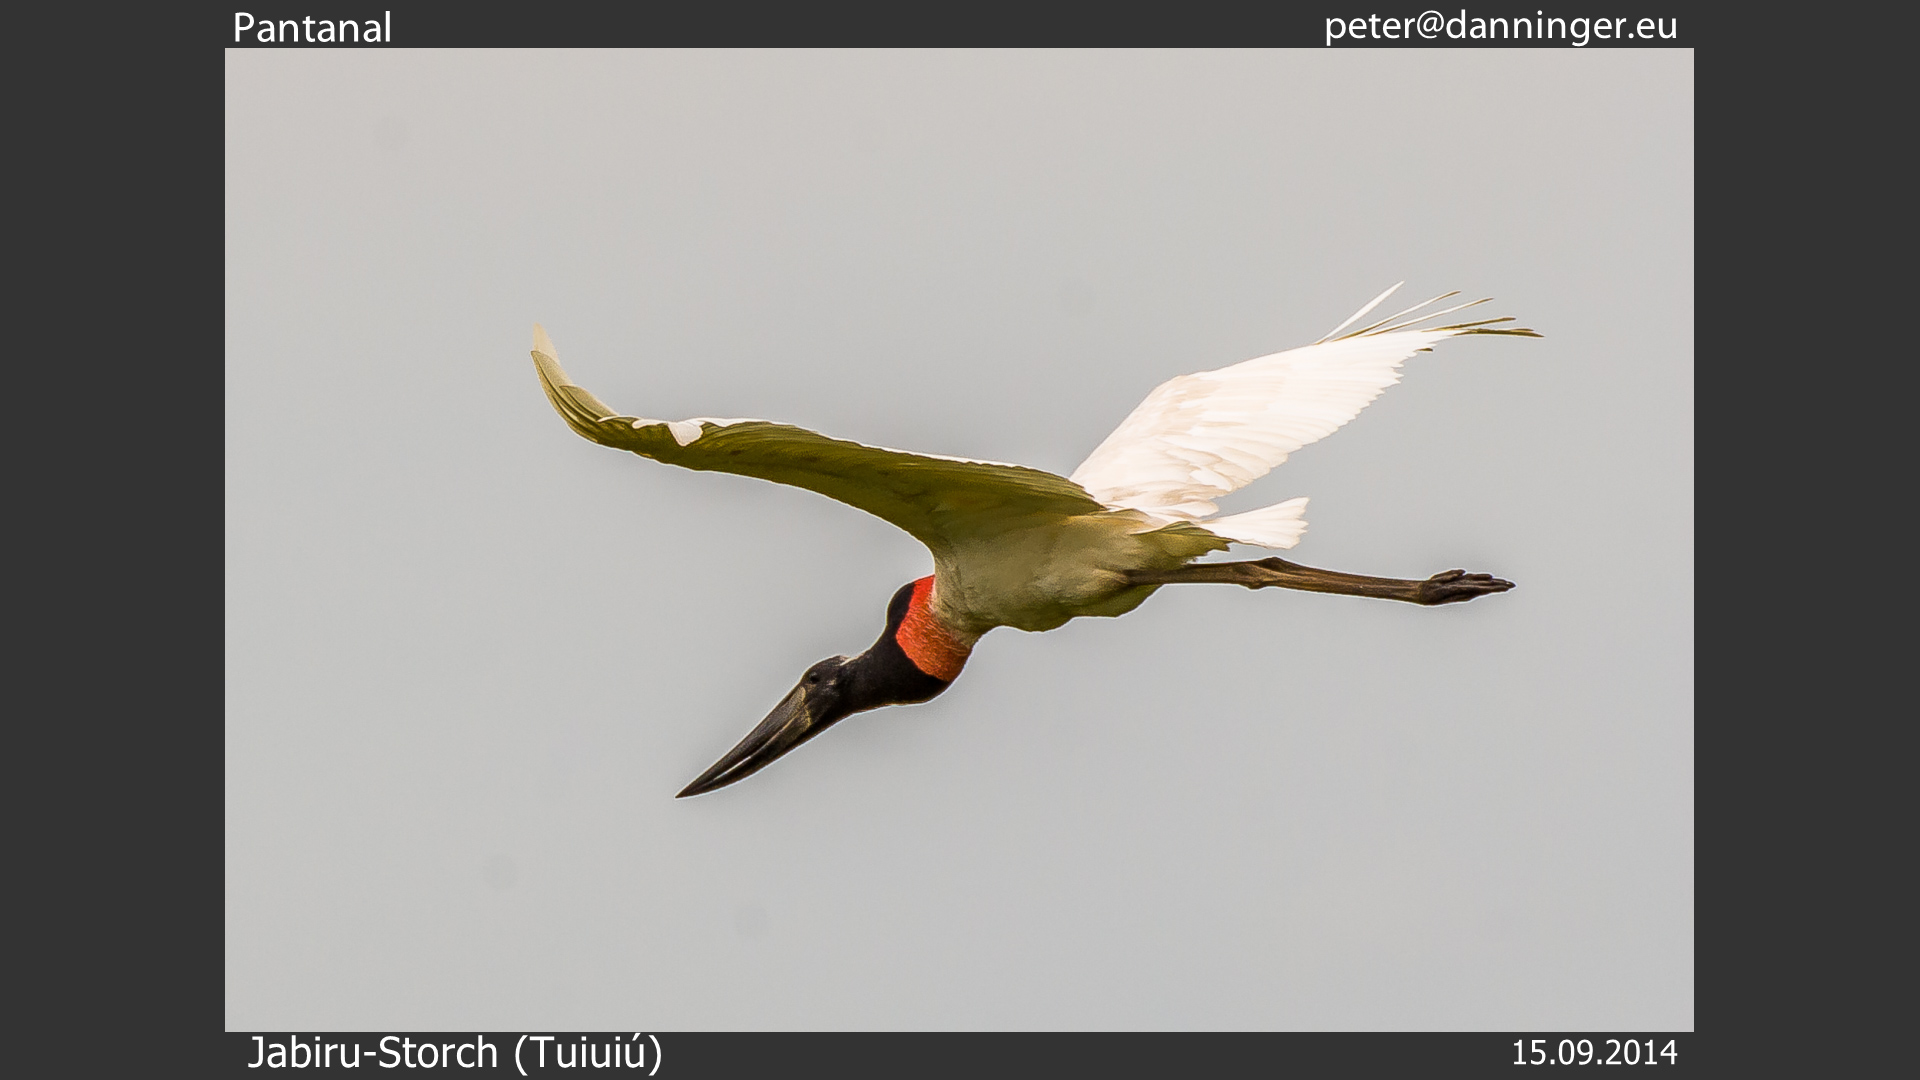 Slide Show Of Some Of My Bird Photos >> Peter S Web Gallery Thumbnailshow And Slideshow